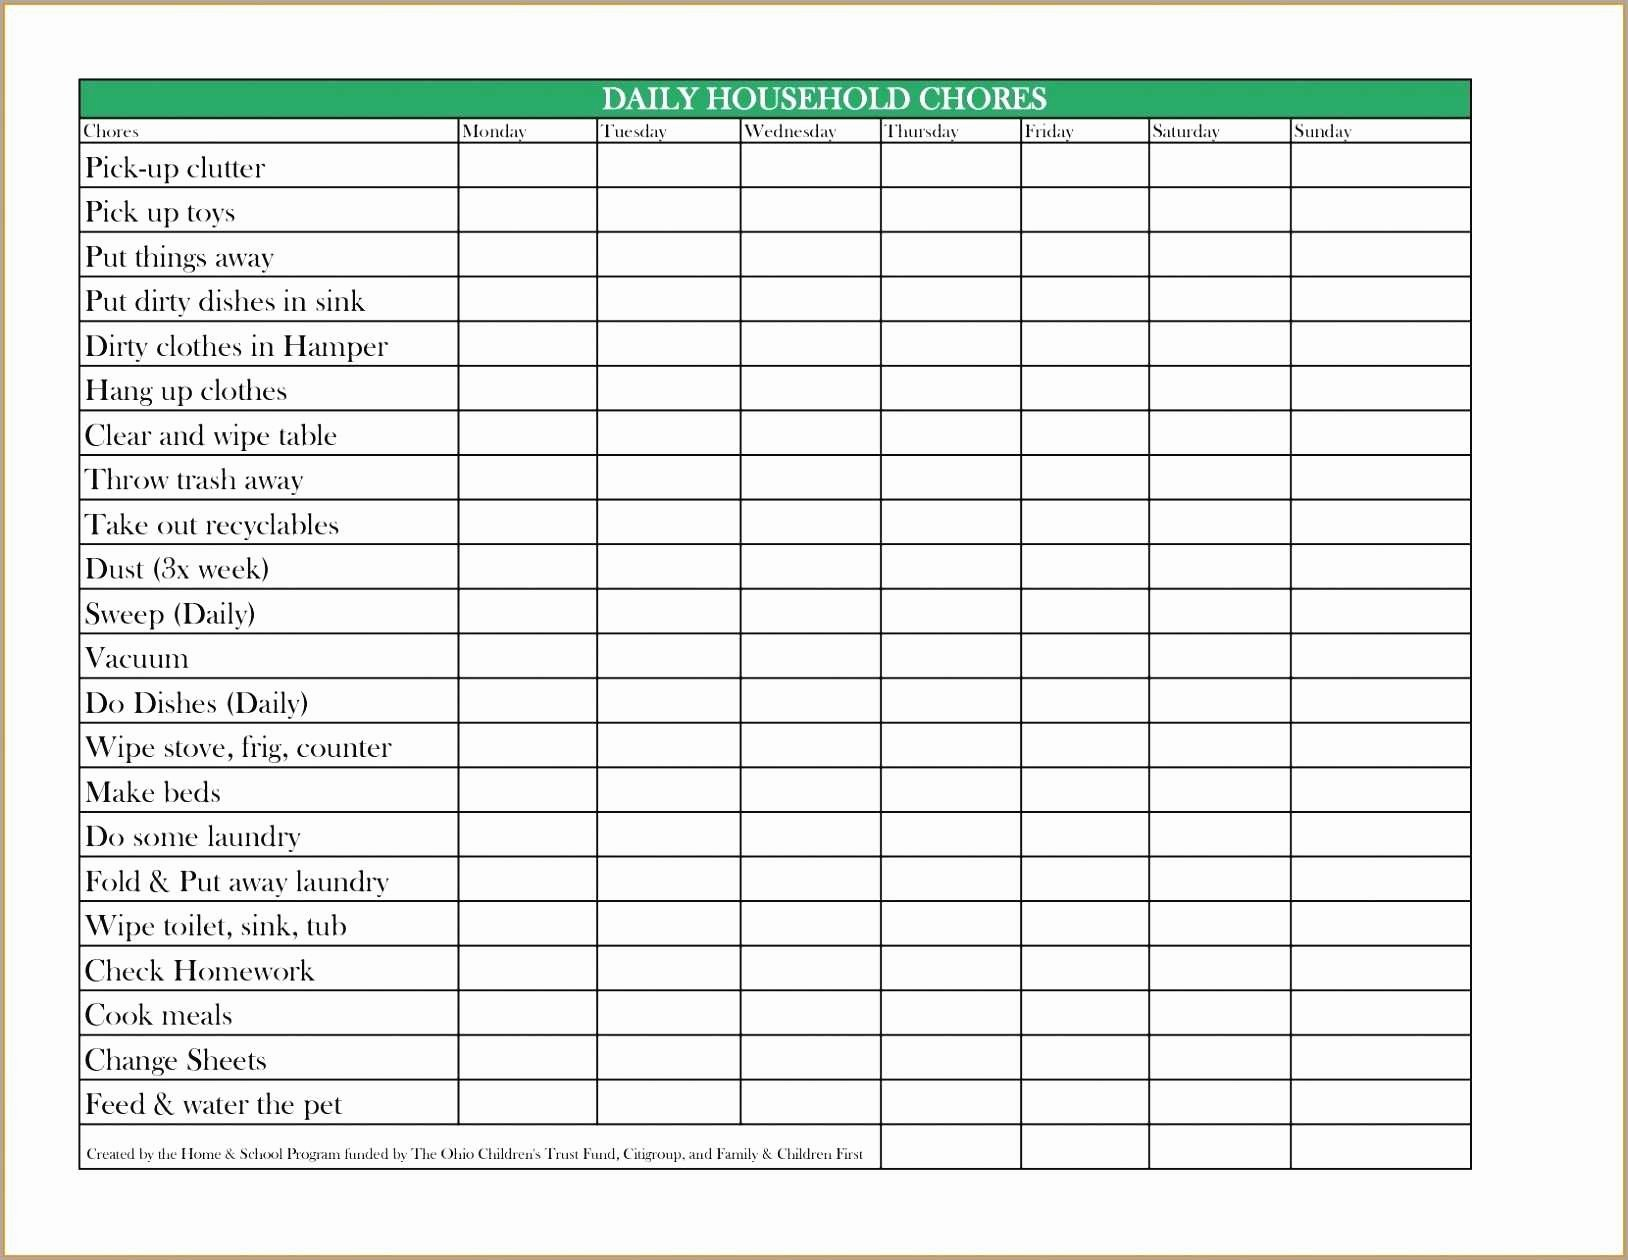 Daily Weekly Monthly Checklist Template Beautiful Lovely Chore Chart Template Daily Weekly Monthly